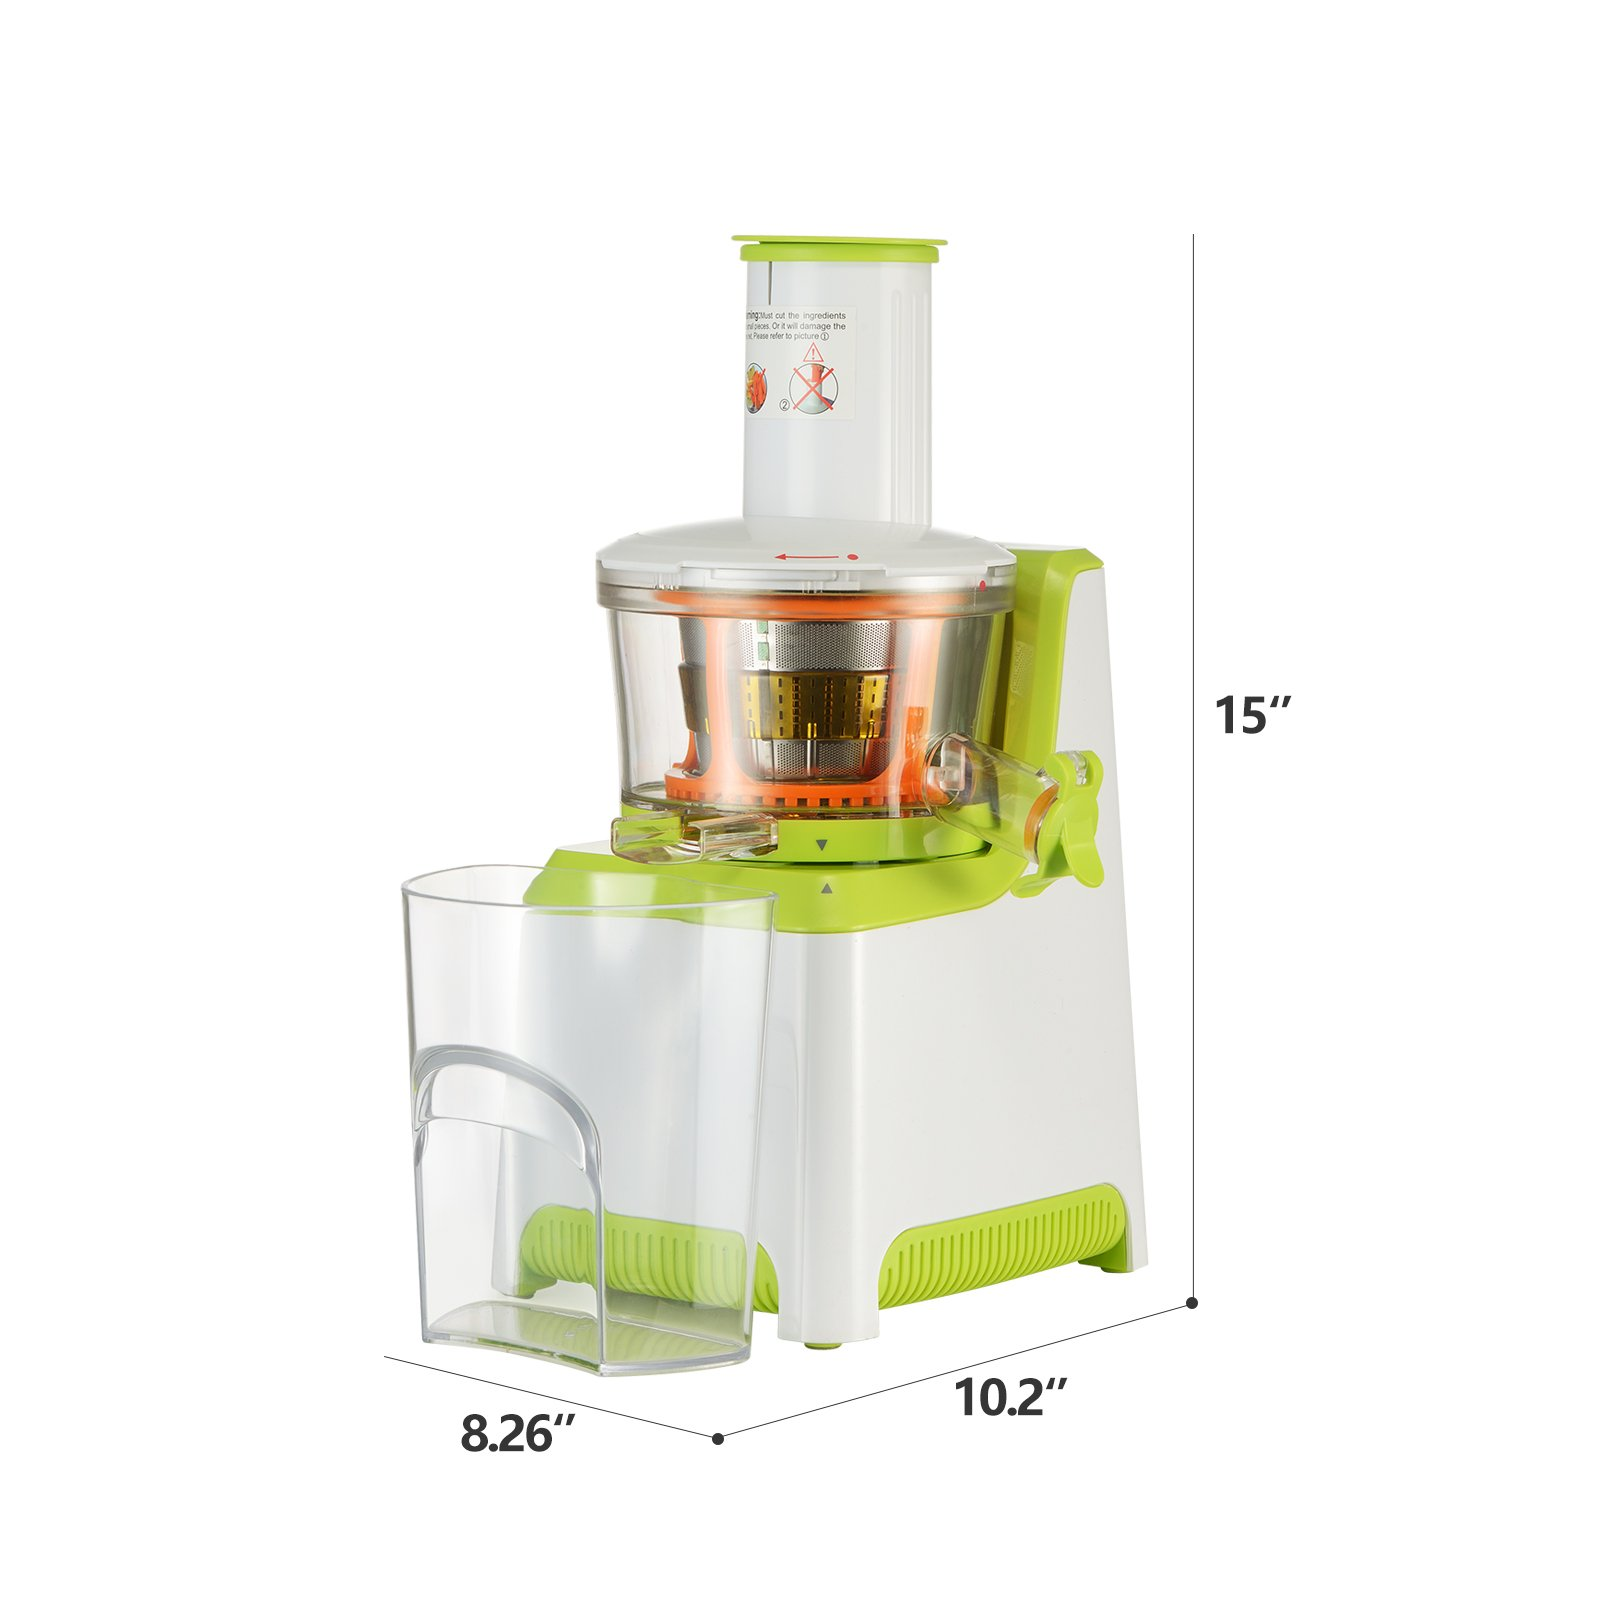 KUPPET Juicer, Slow Masticating Juicer, Higher Juicer Yield, Cold Press Juicer Machine with Quiet Motor & Reverse Function, High Nutrient Fruit & Vegetable Juice, Easy to Clean (Green&White) by KUPPET (Image #6)